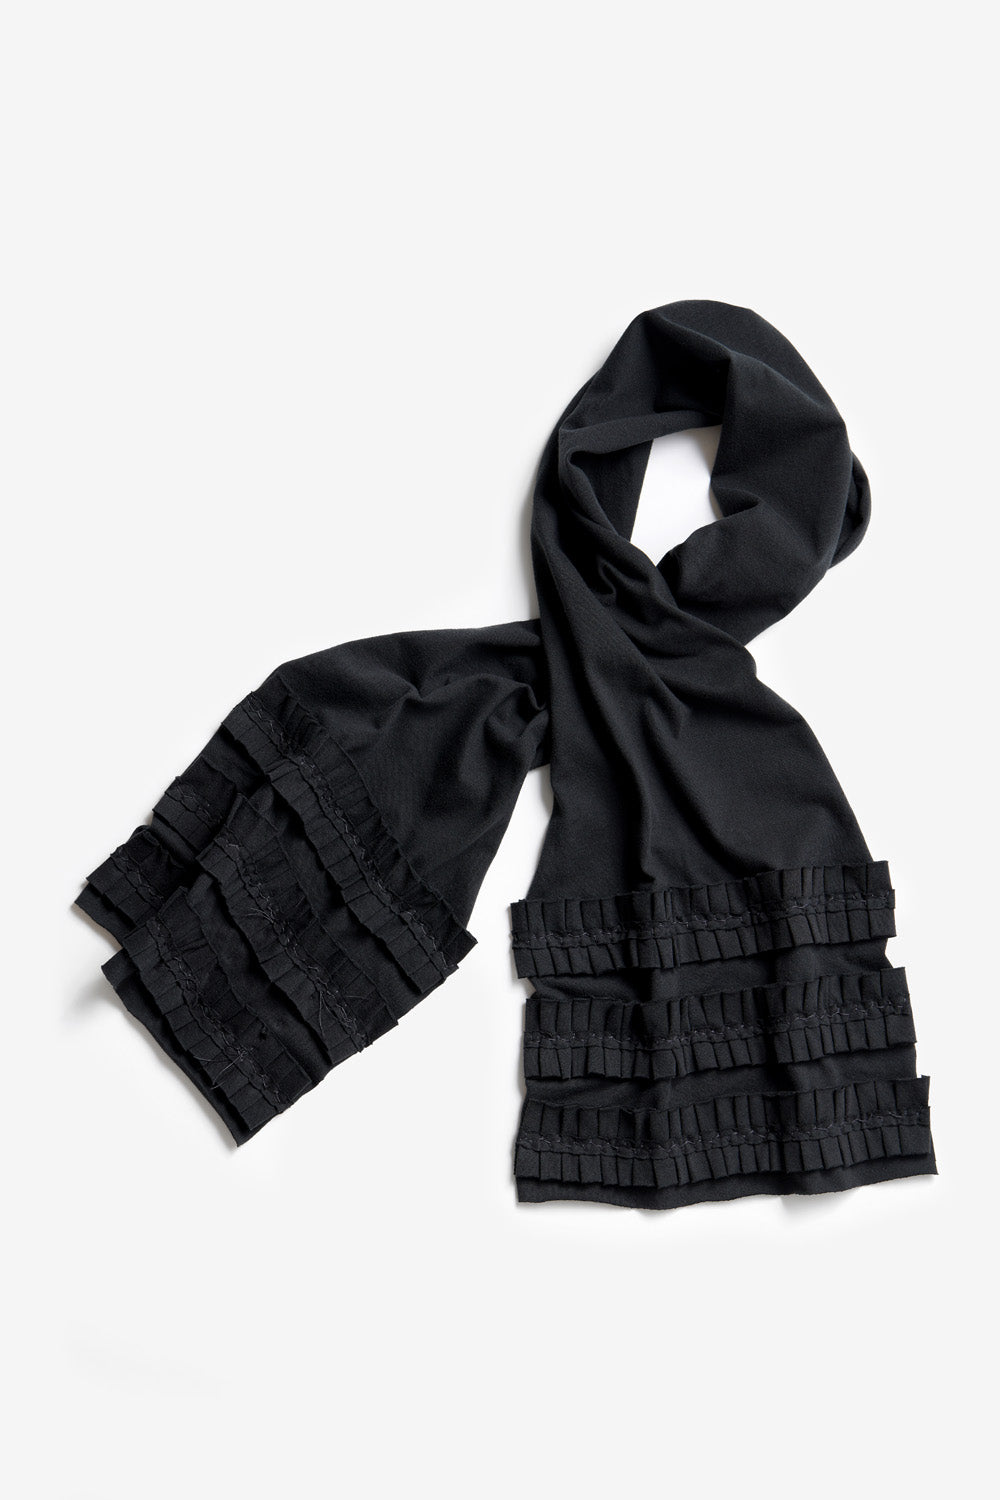 The School of Making Ruffle Scarf Kit with Hand-Sewn Pleated Ruffle